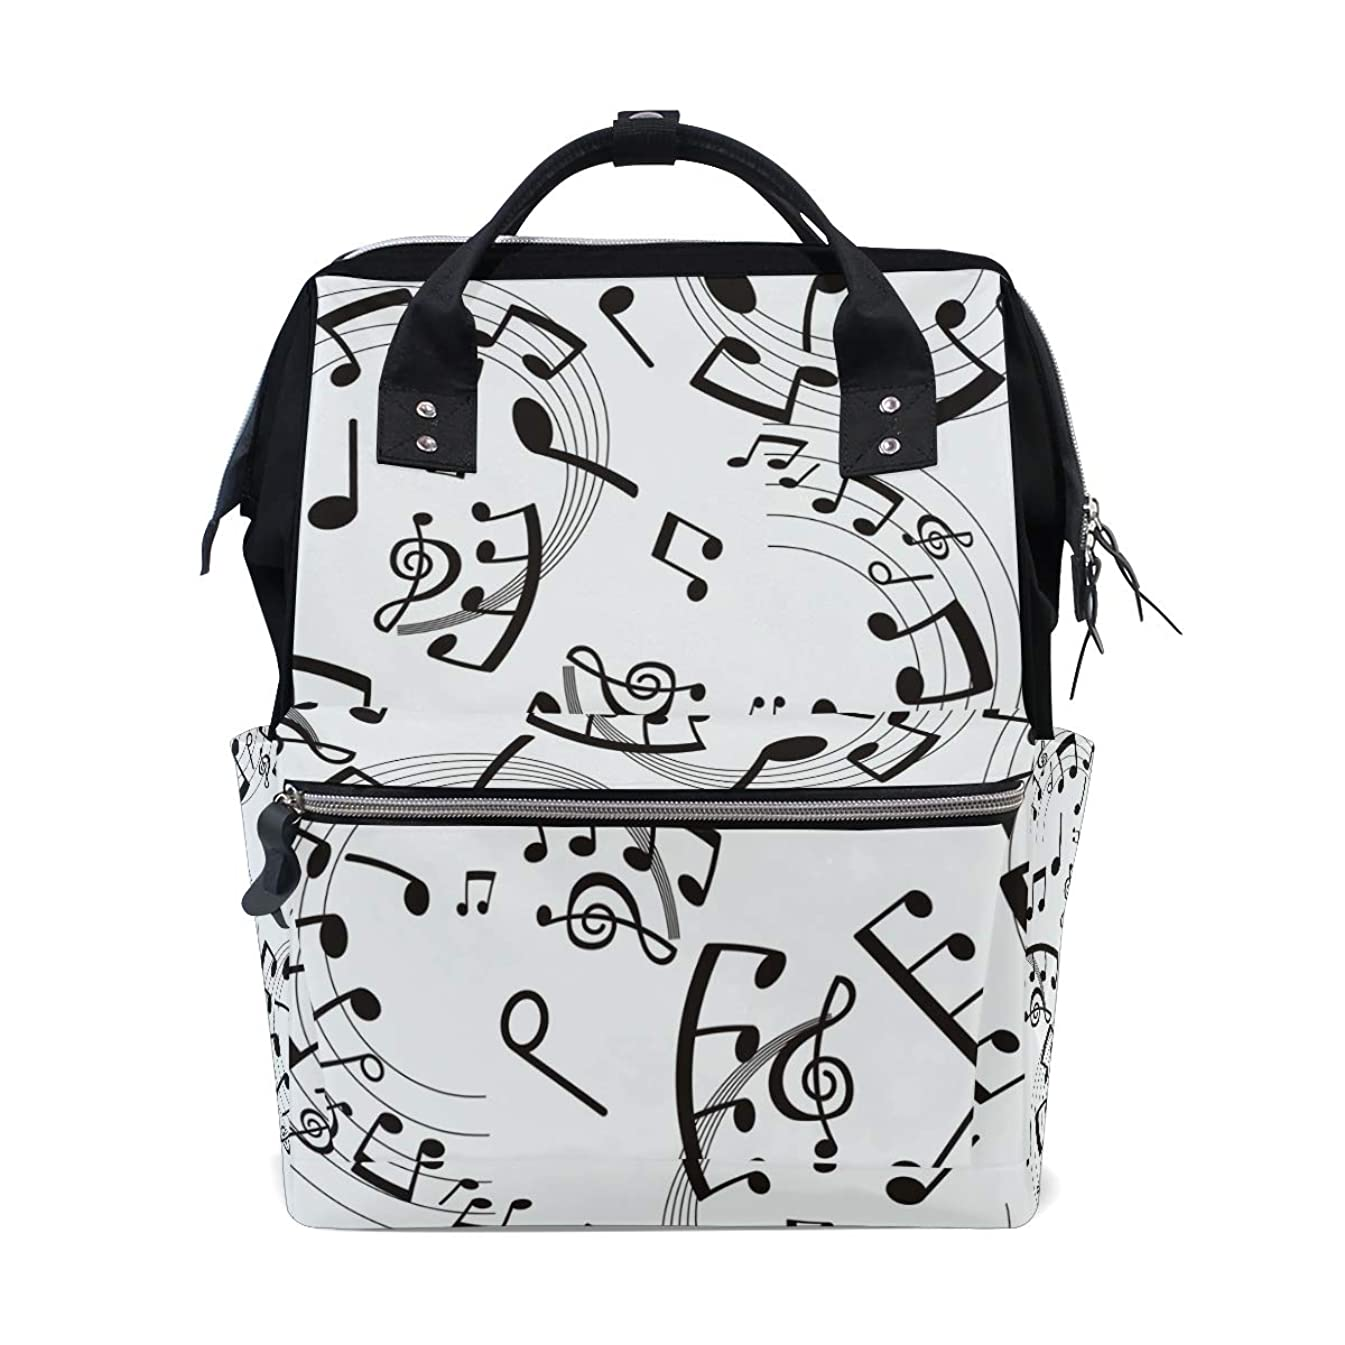 Black And White Musical Note School Backpack Large Capacity Mummy Bags Laptop Handbag Casual Travel Rucksack Satchel For Women Men Adult Teen Children